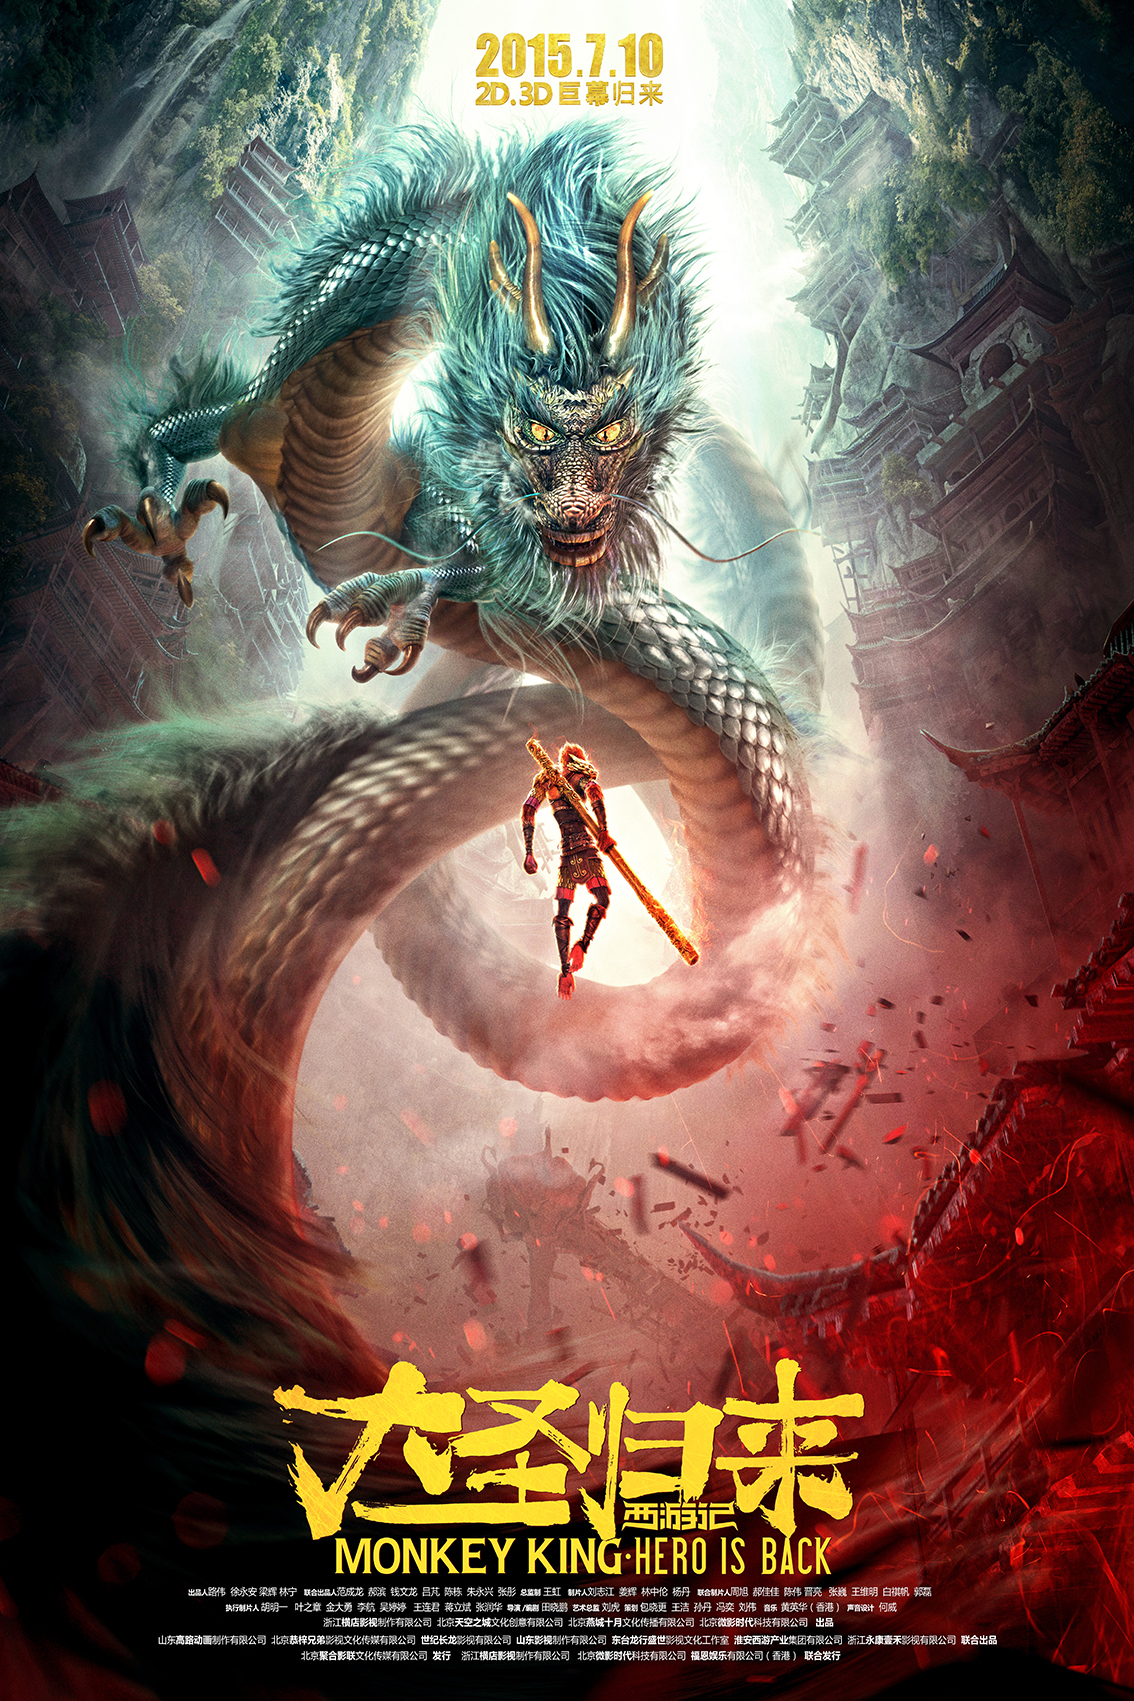 Monkey King Hero is Back [2015 China Movie]